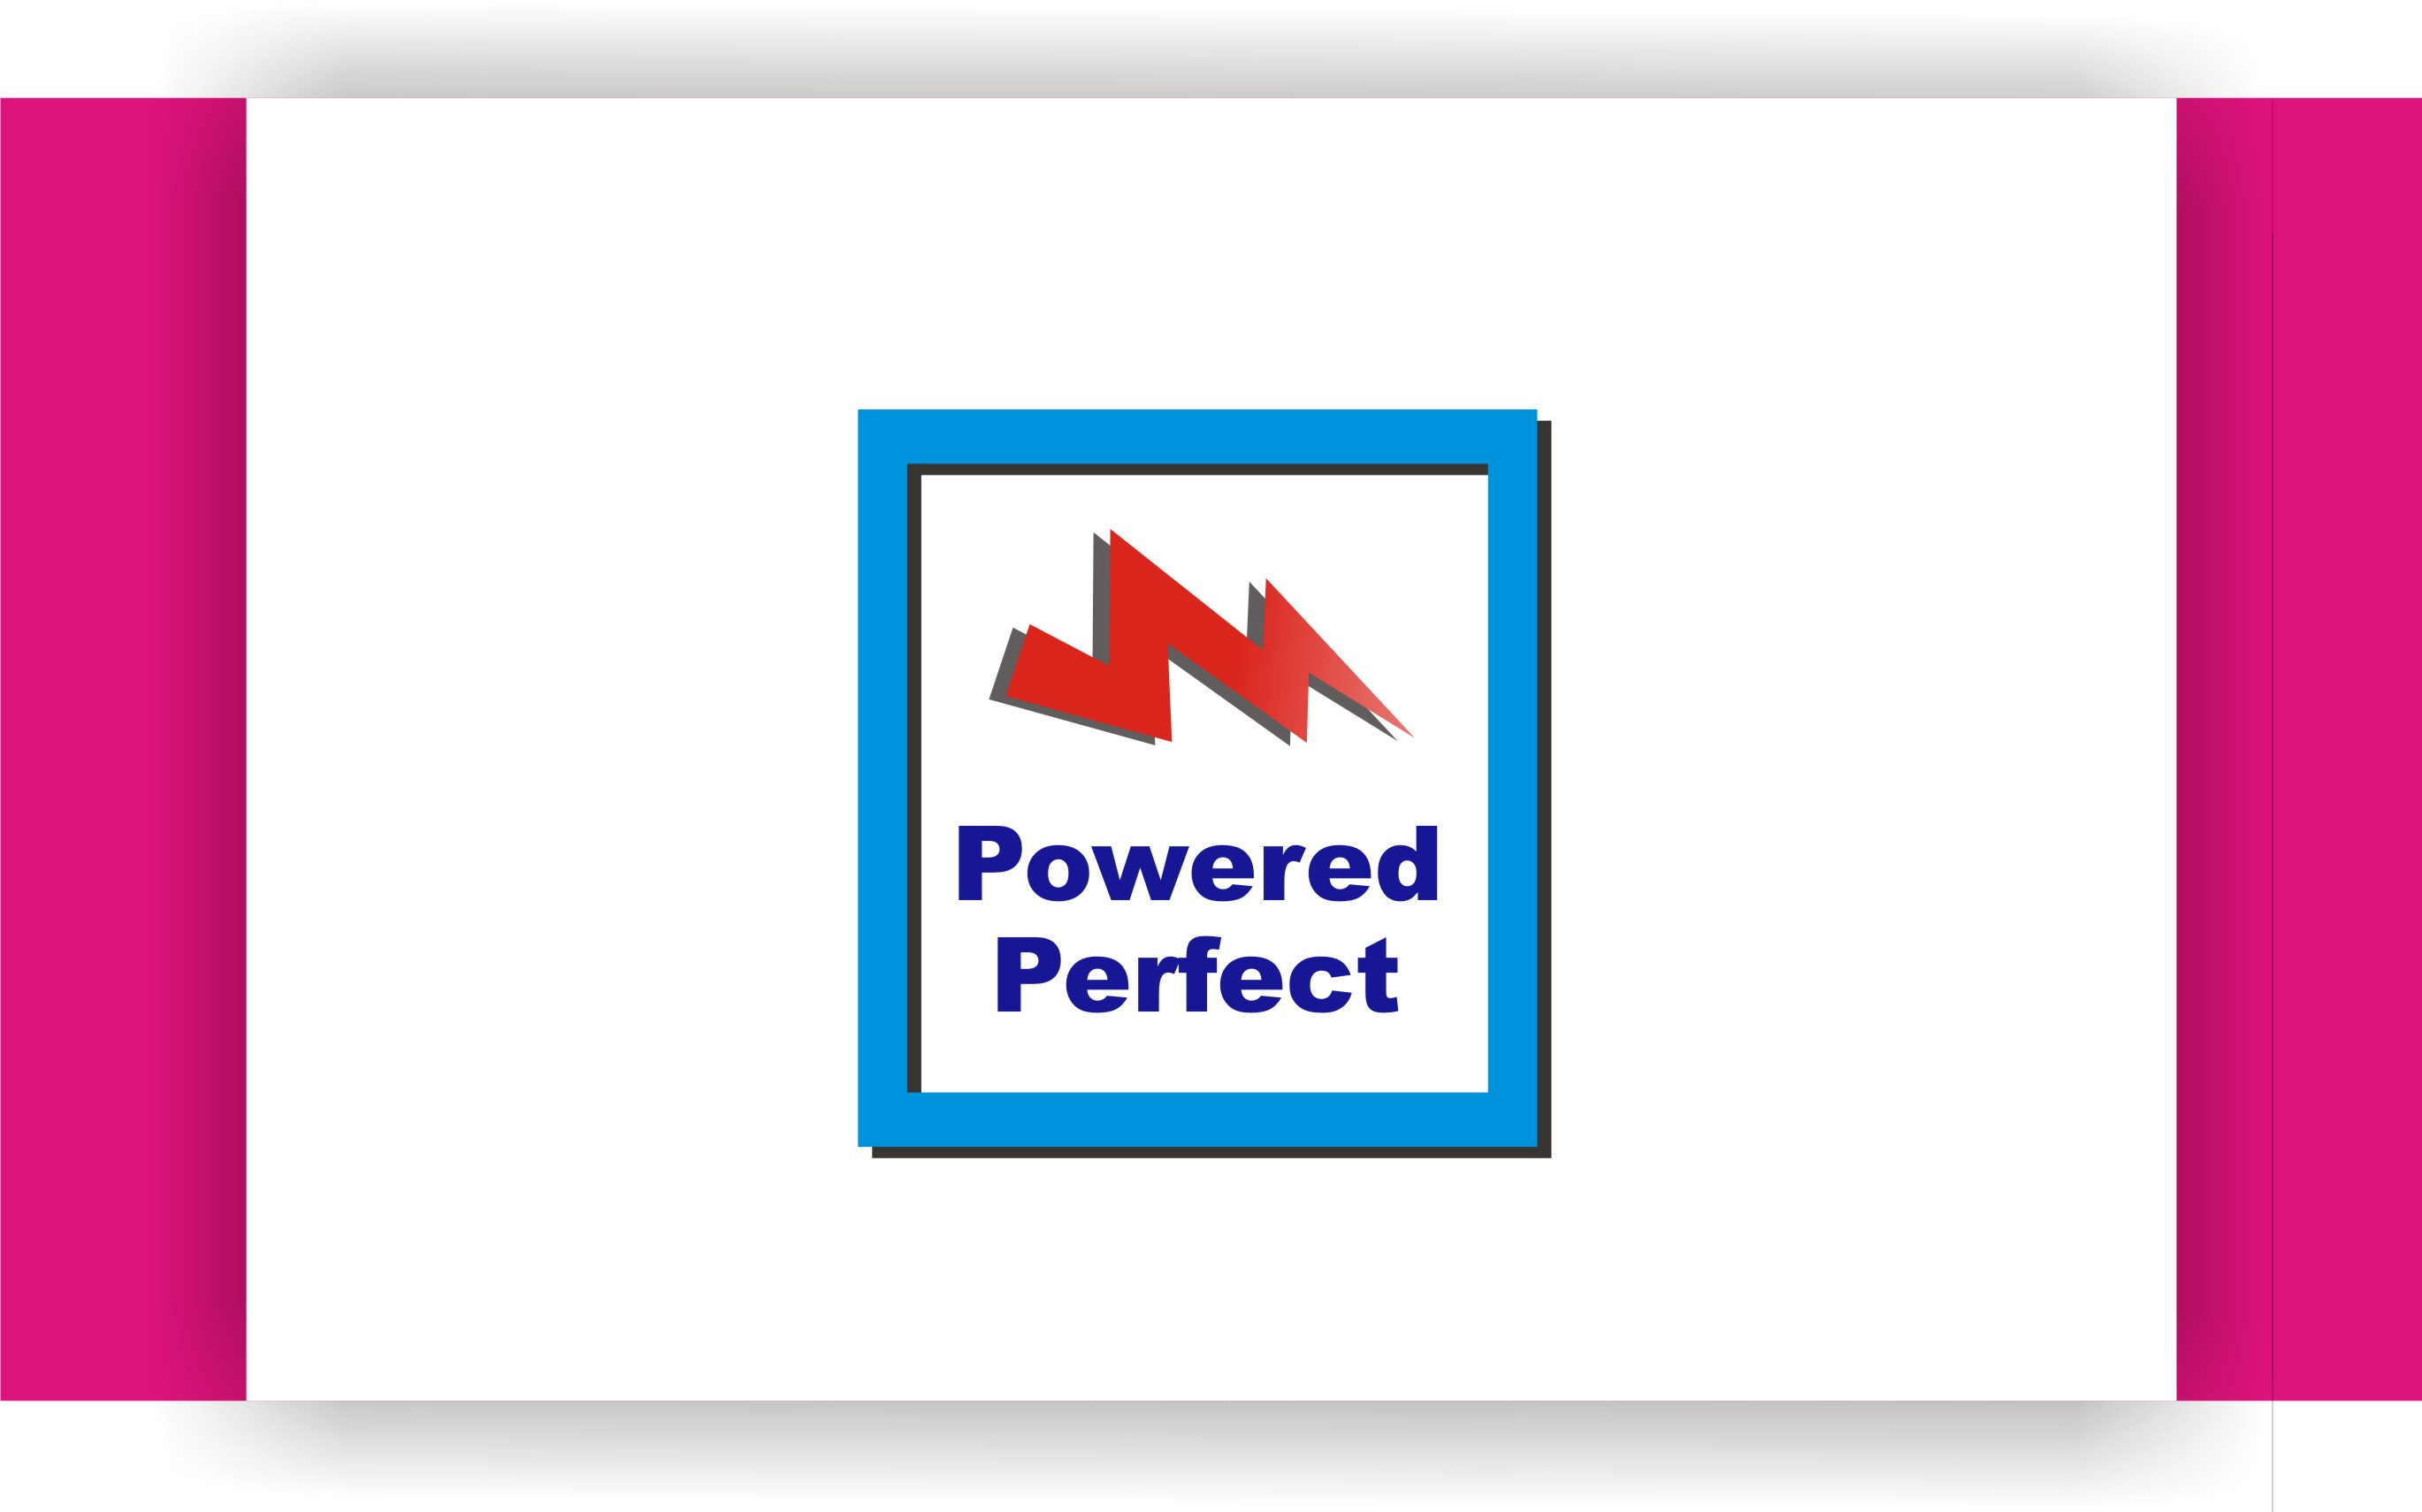 Logo Design by Shailender Kumar - Entry No. 62 in the Logo Design Contest Captivating Logo Design for Powered Perfect.